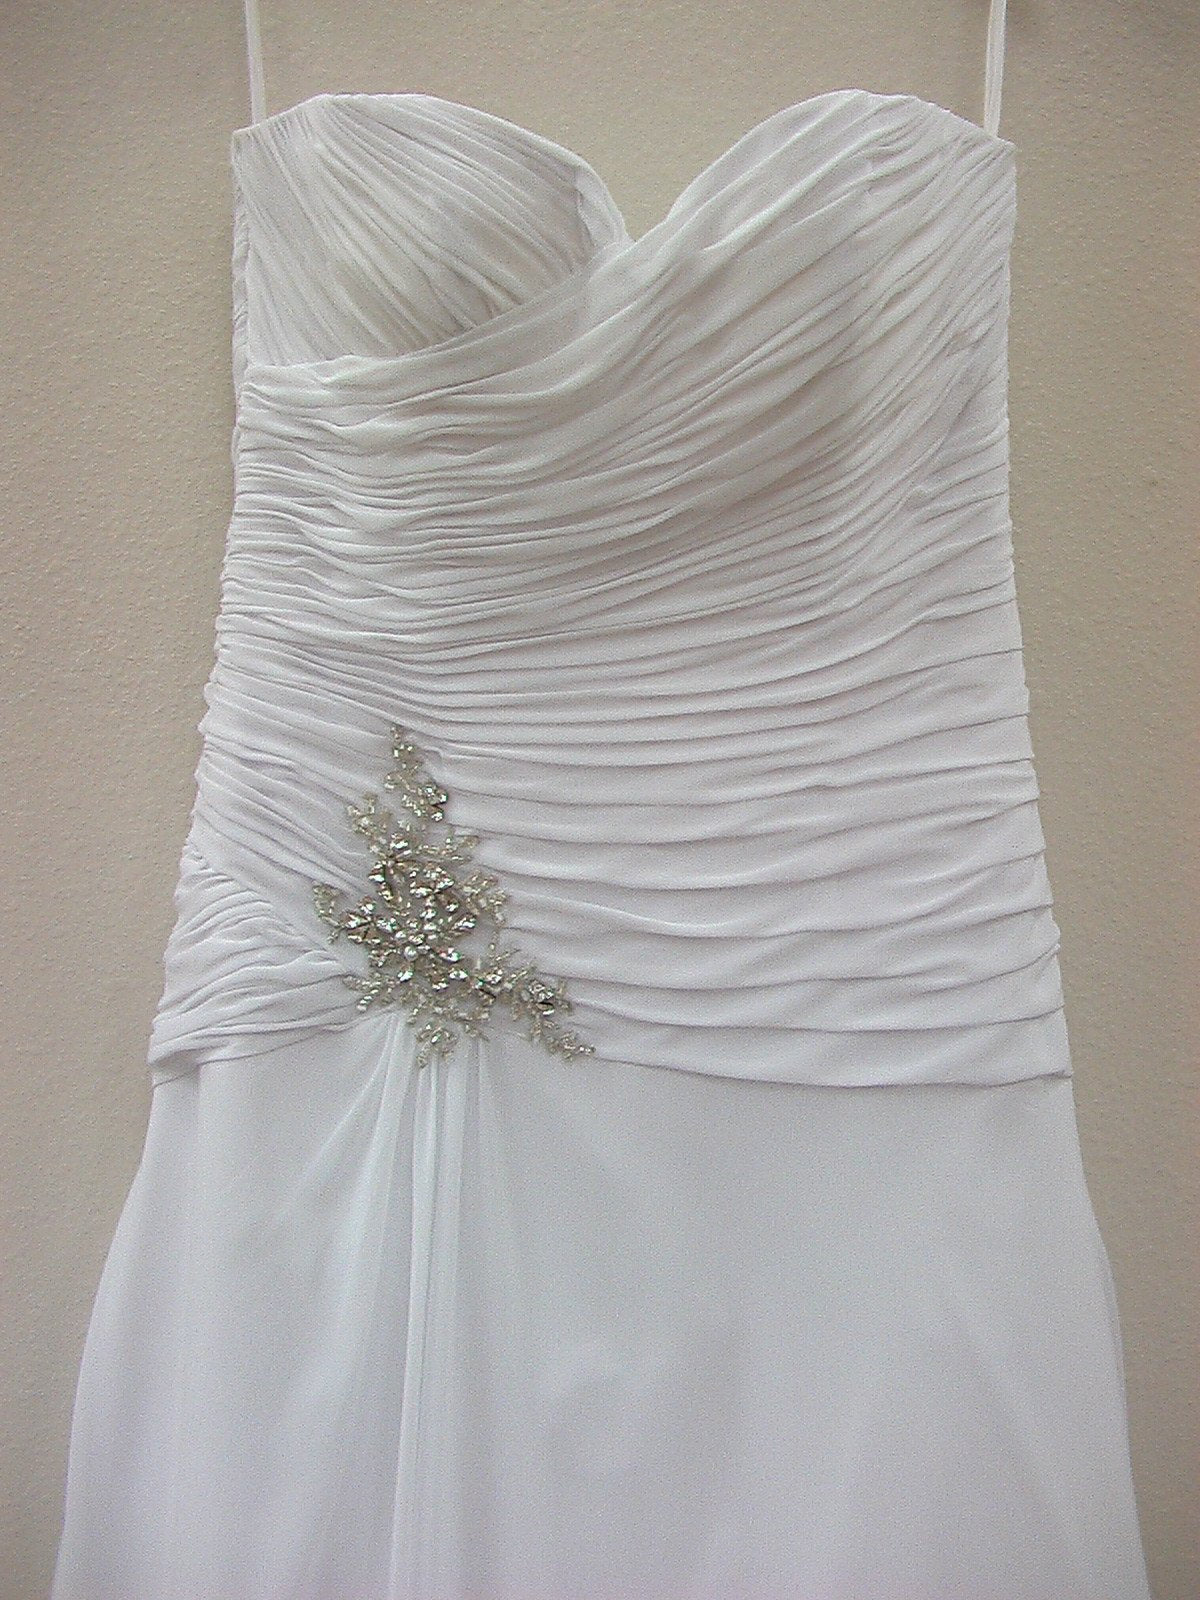 Dere Kiang 11046 White/Silver size 14 In Stock Wedding Dress - Tom's Bridal